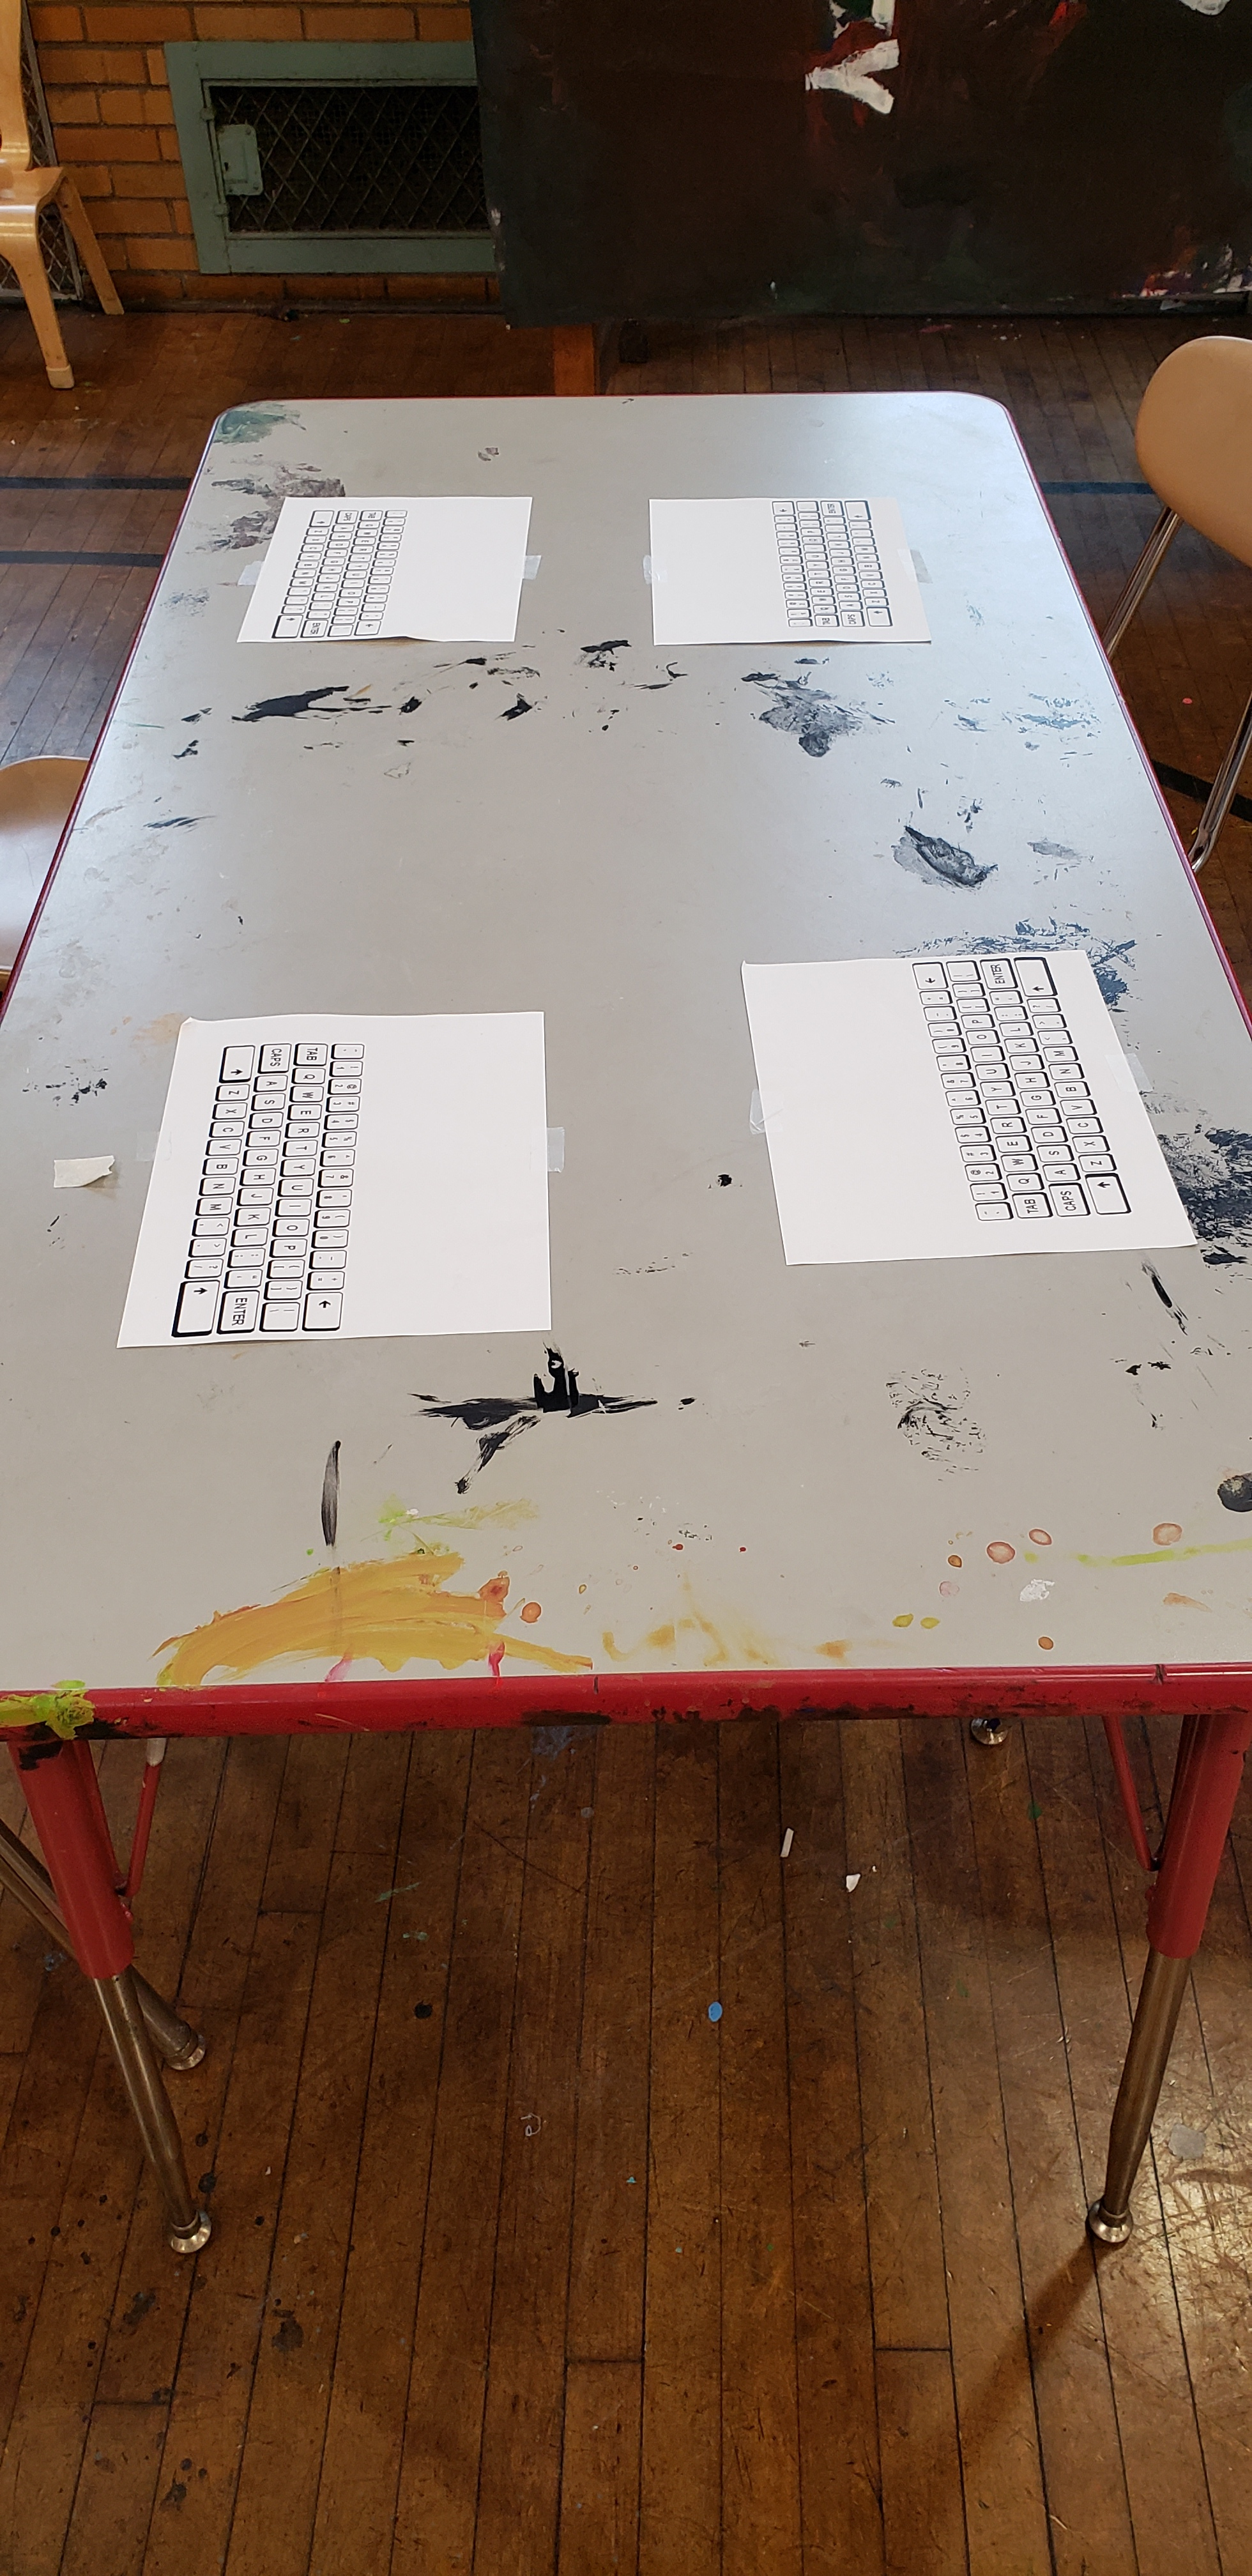 On an art room table, covered in old paint marks, print outs of computer keyboards are taped down.